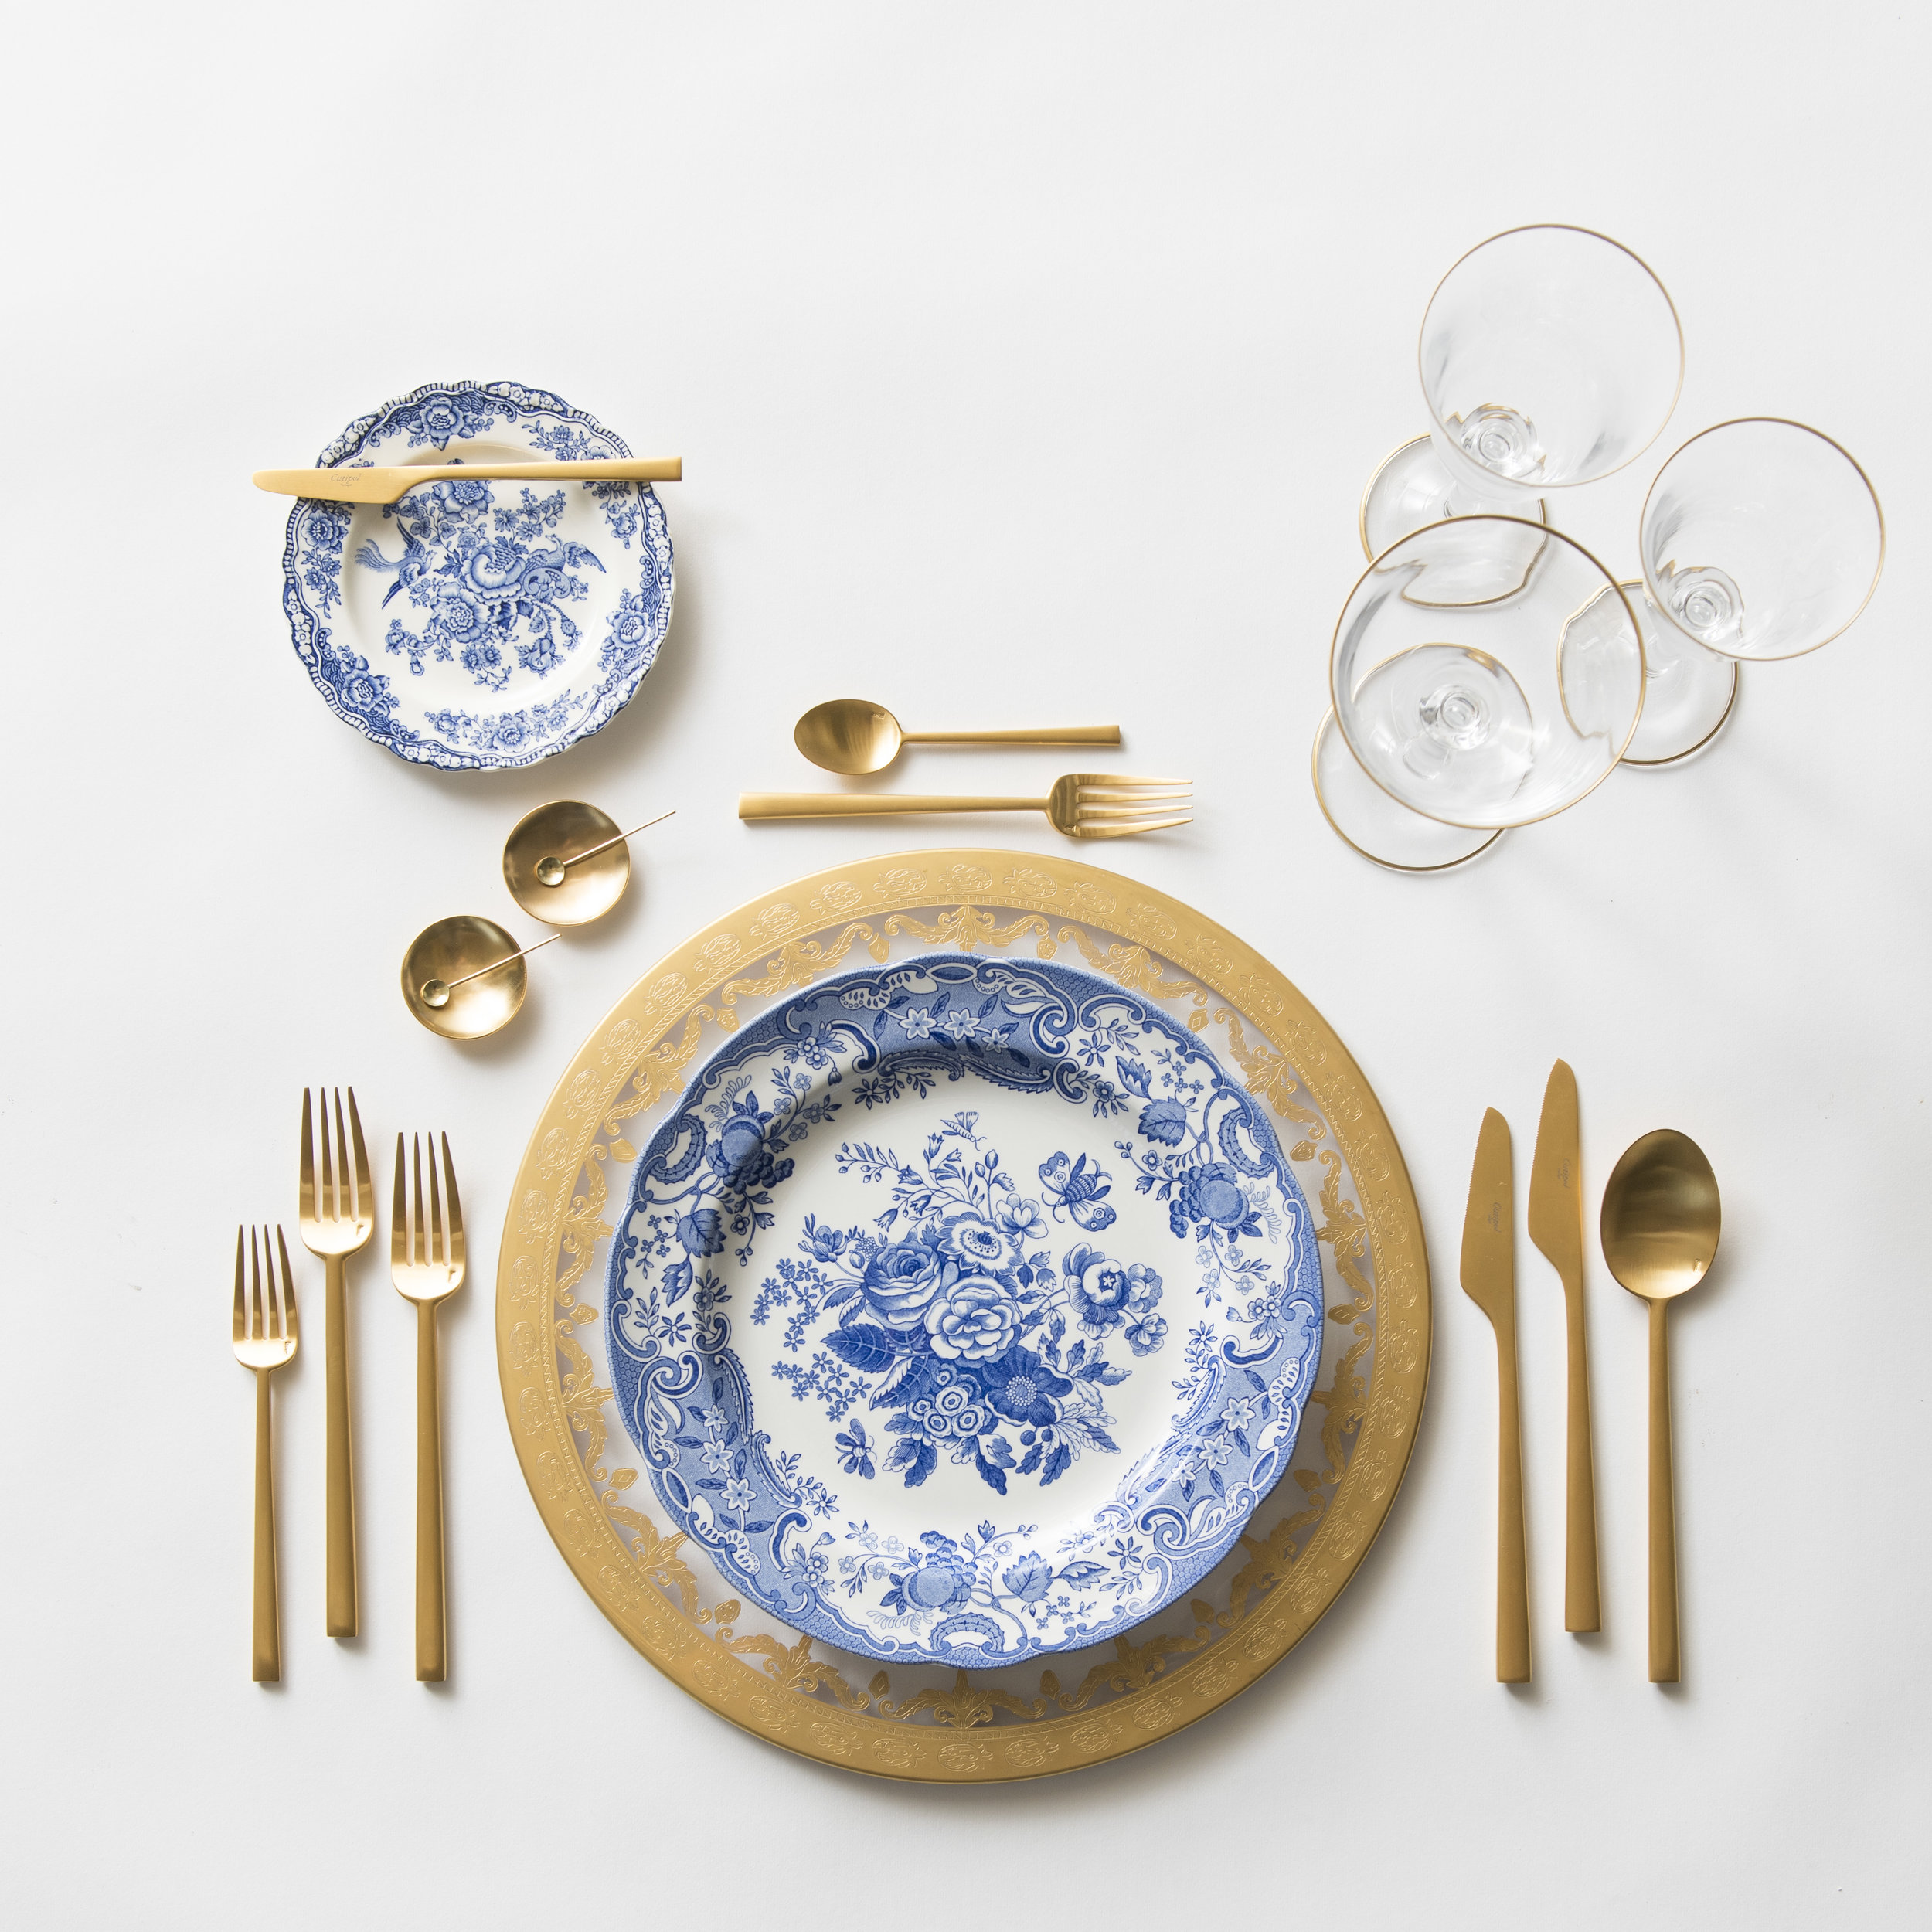 RENT: Versailles Glass Chargers in 24k Gold + Blue Garden Collection Vintage China + Rondo Flatware in Brushed 24k Gold + Chloe 24k Gold Rimmed Stemware + 14k Gold Salt Cellars + Tiny Gold Spoons   SHOP: Rondo Flatware in Brushed 24k Gold + Chloe 24k Gold Rimmed Stemware + 14k Gold Salt Cellars + Tiny Gold Spoons